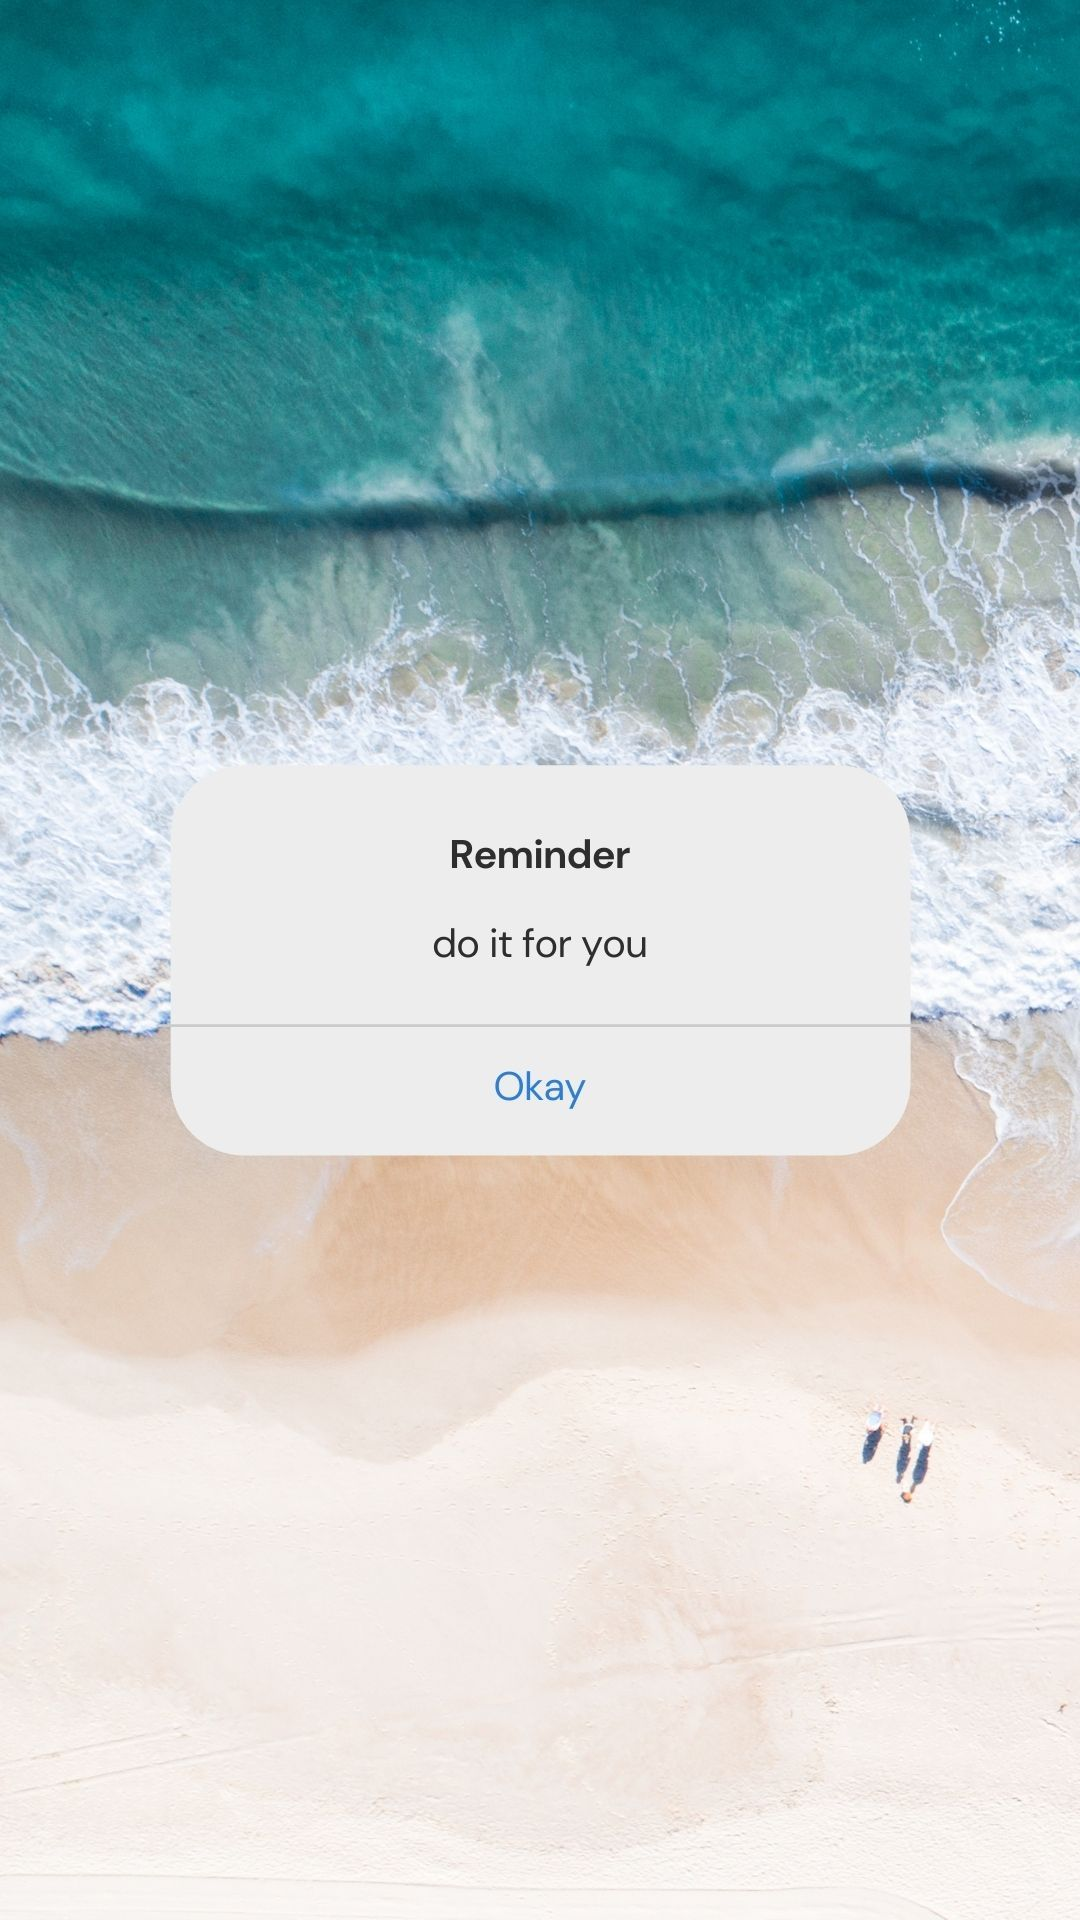 Reminder: do it for you